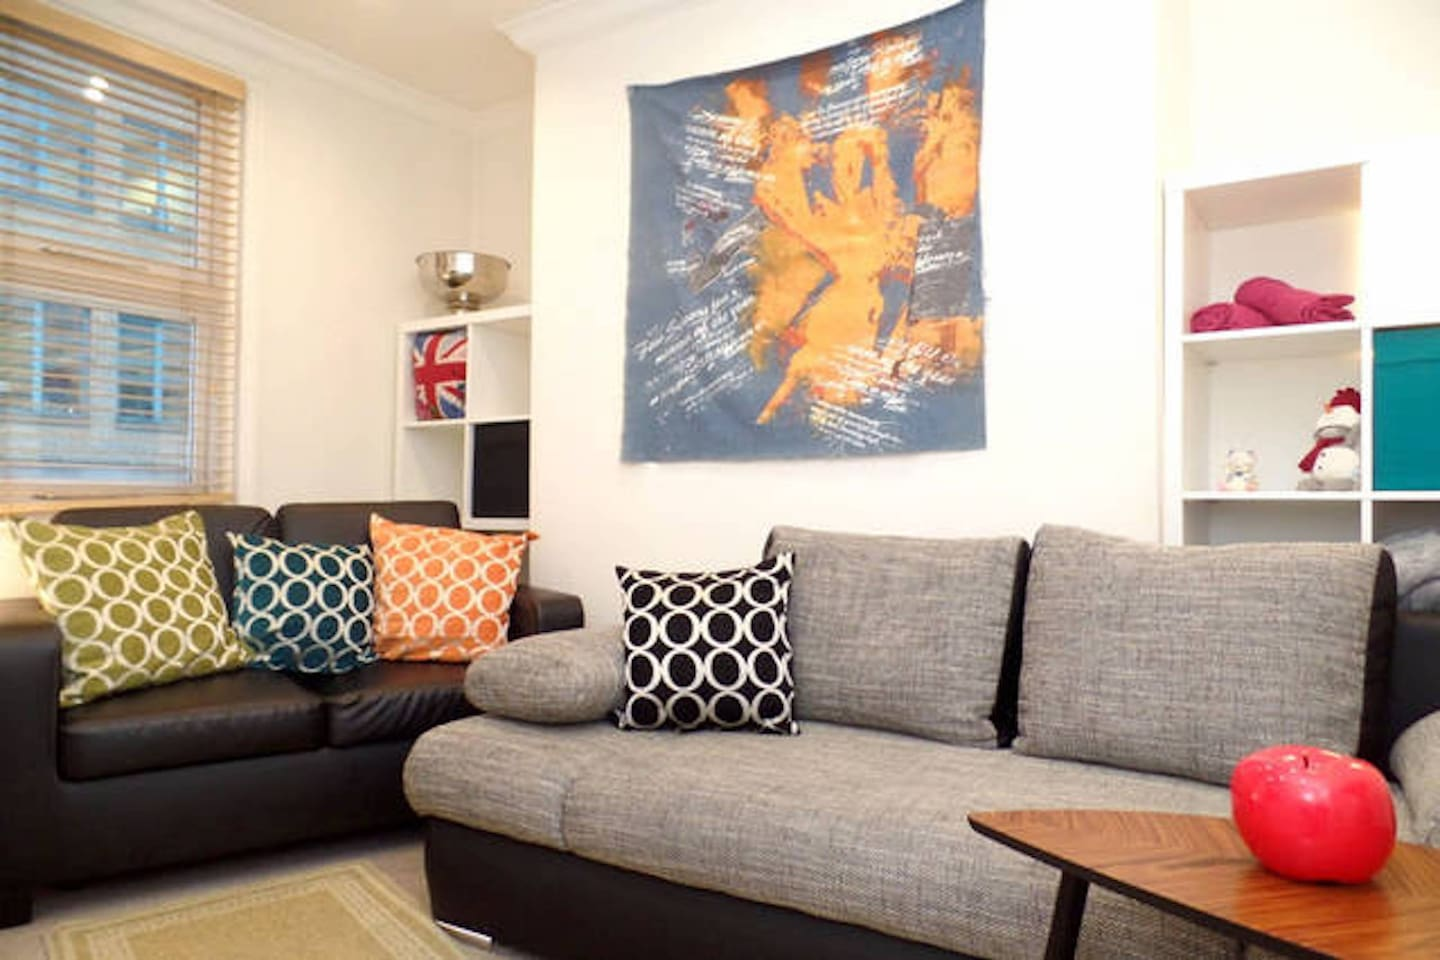 budget family xxl clean 2bed2bath london eye safe apartments for